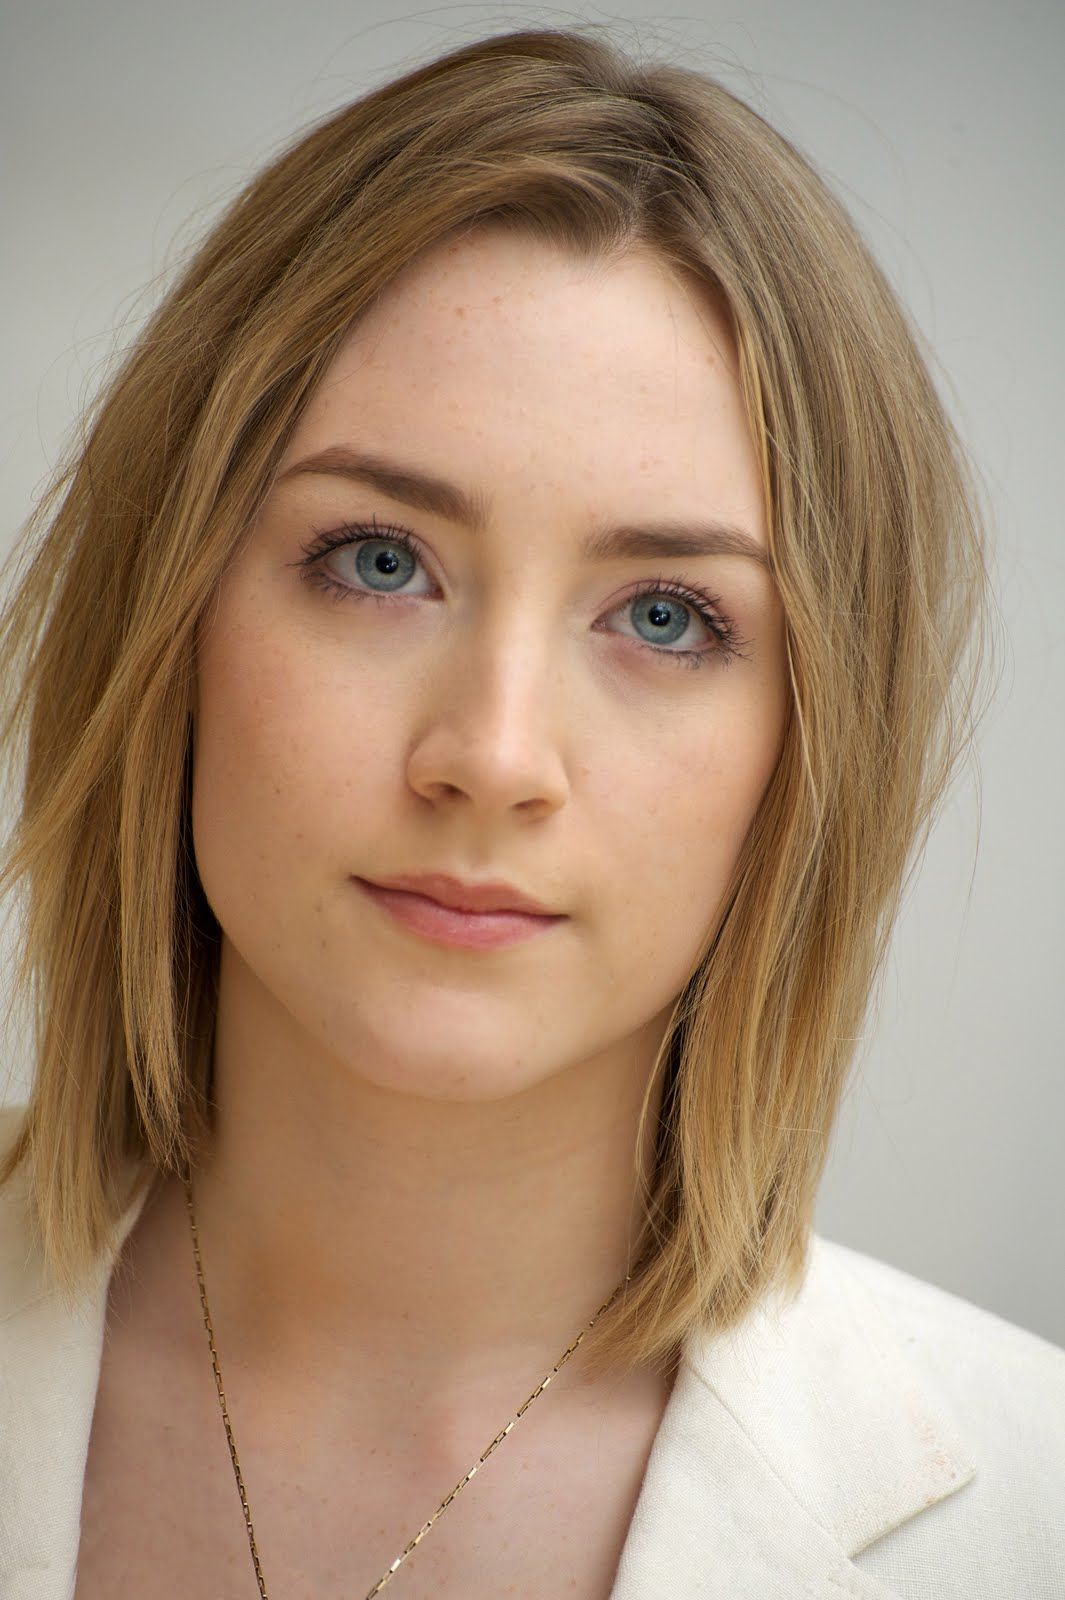 saoirse ronan 1994 atonement 2007 the lovely bones 2009 saoirse ronan 1994 atonement 2007 the lovely bones 2009